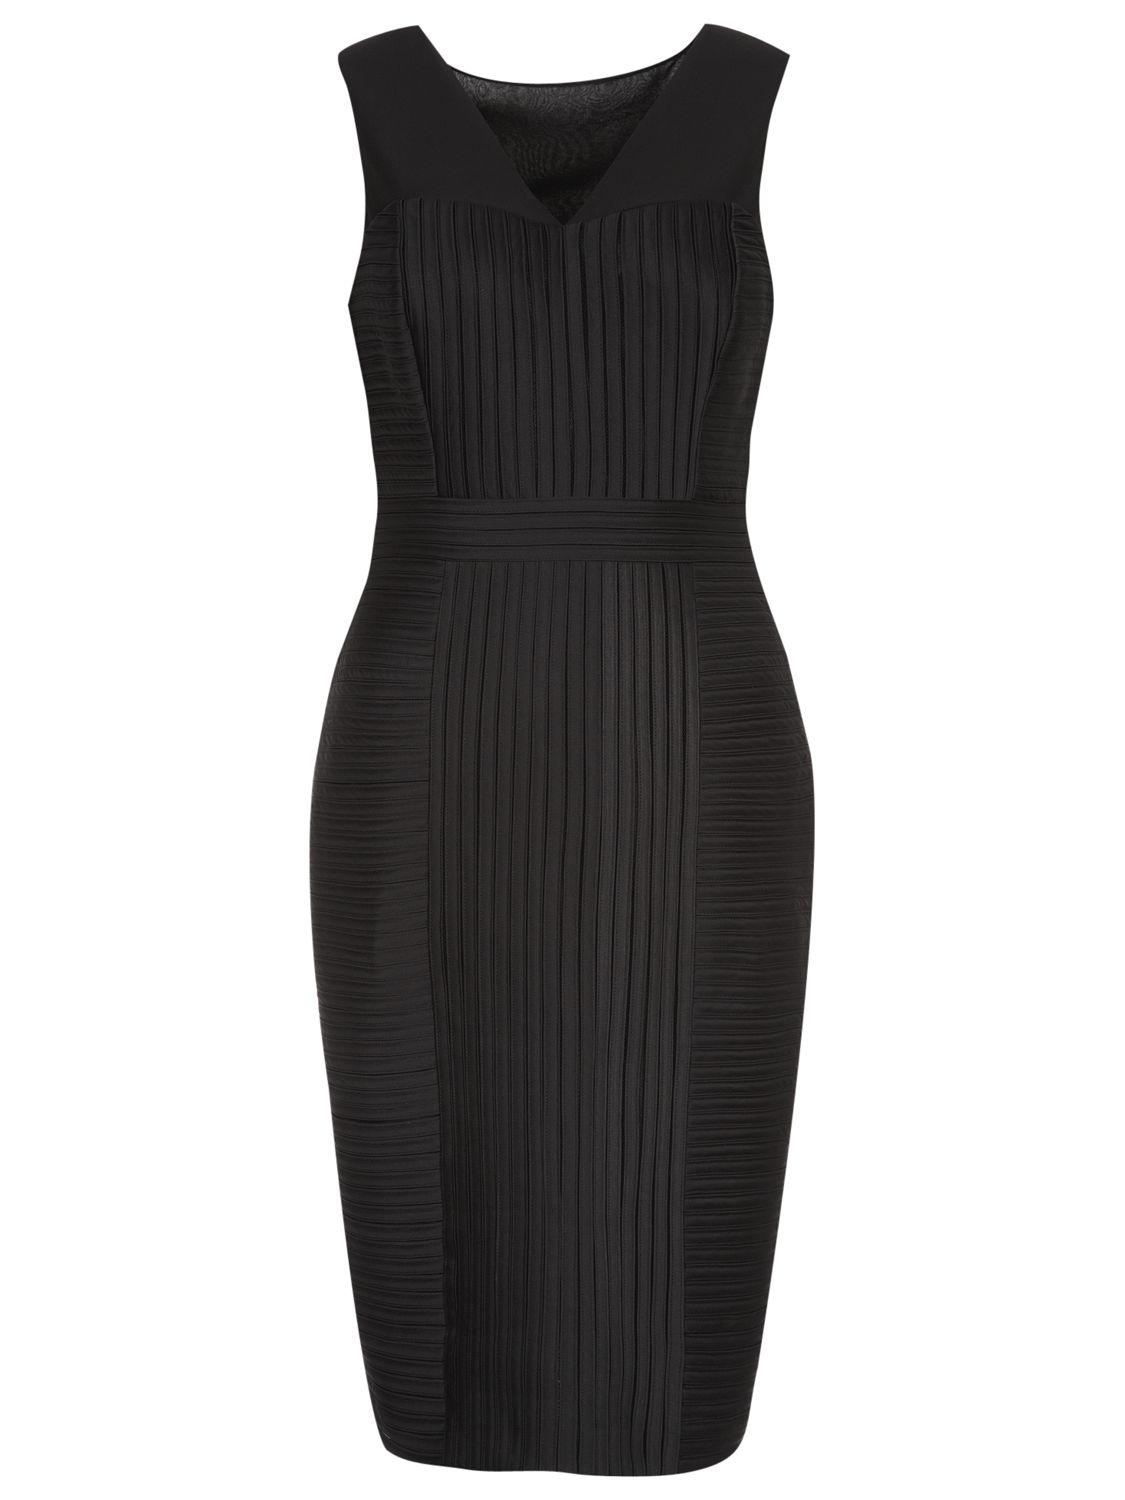 planet tapework dress black, planet, tapework, dress, black, 10 8 14 12 16 20 18, clearance, womenswear offers, womens dresses offers, women, inactive womenswear, new reductions, womens dresses, special offers, edition magazine, workwear, 1607354